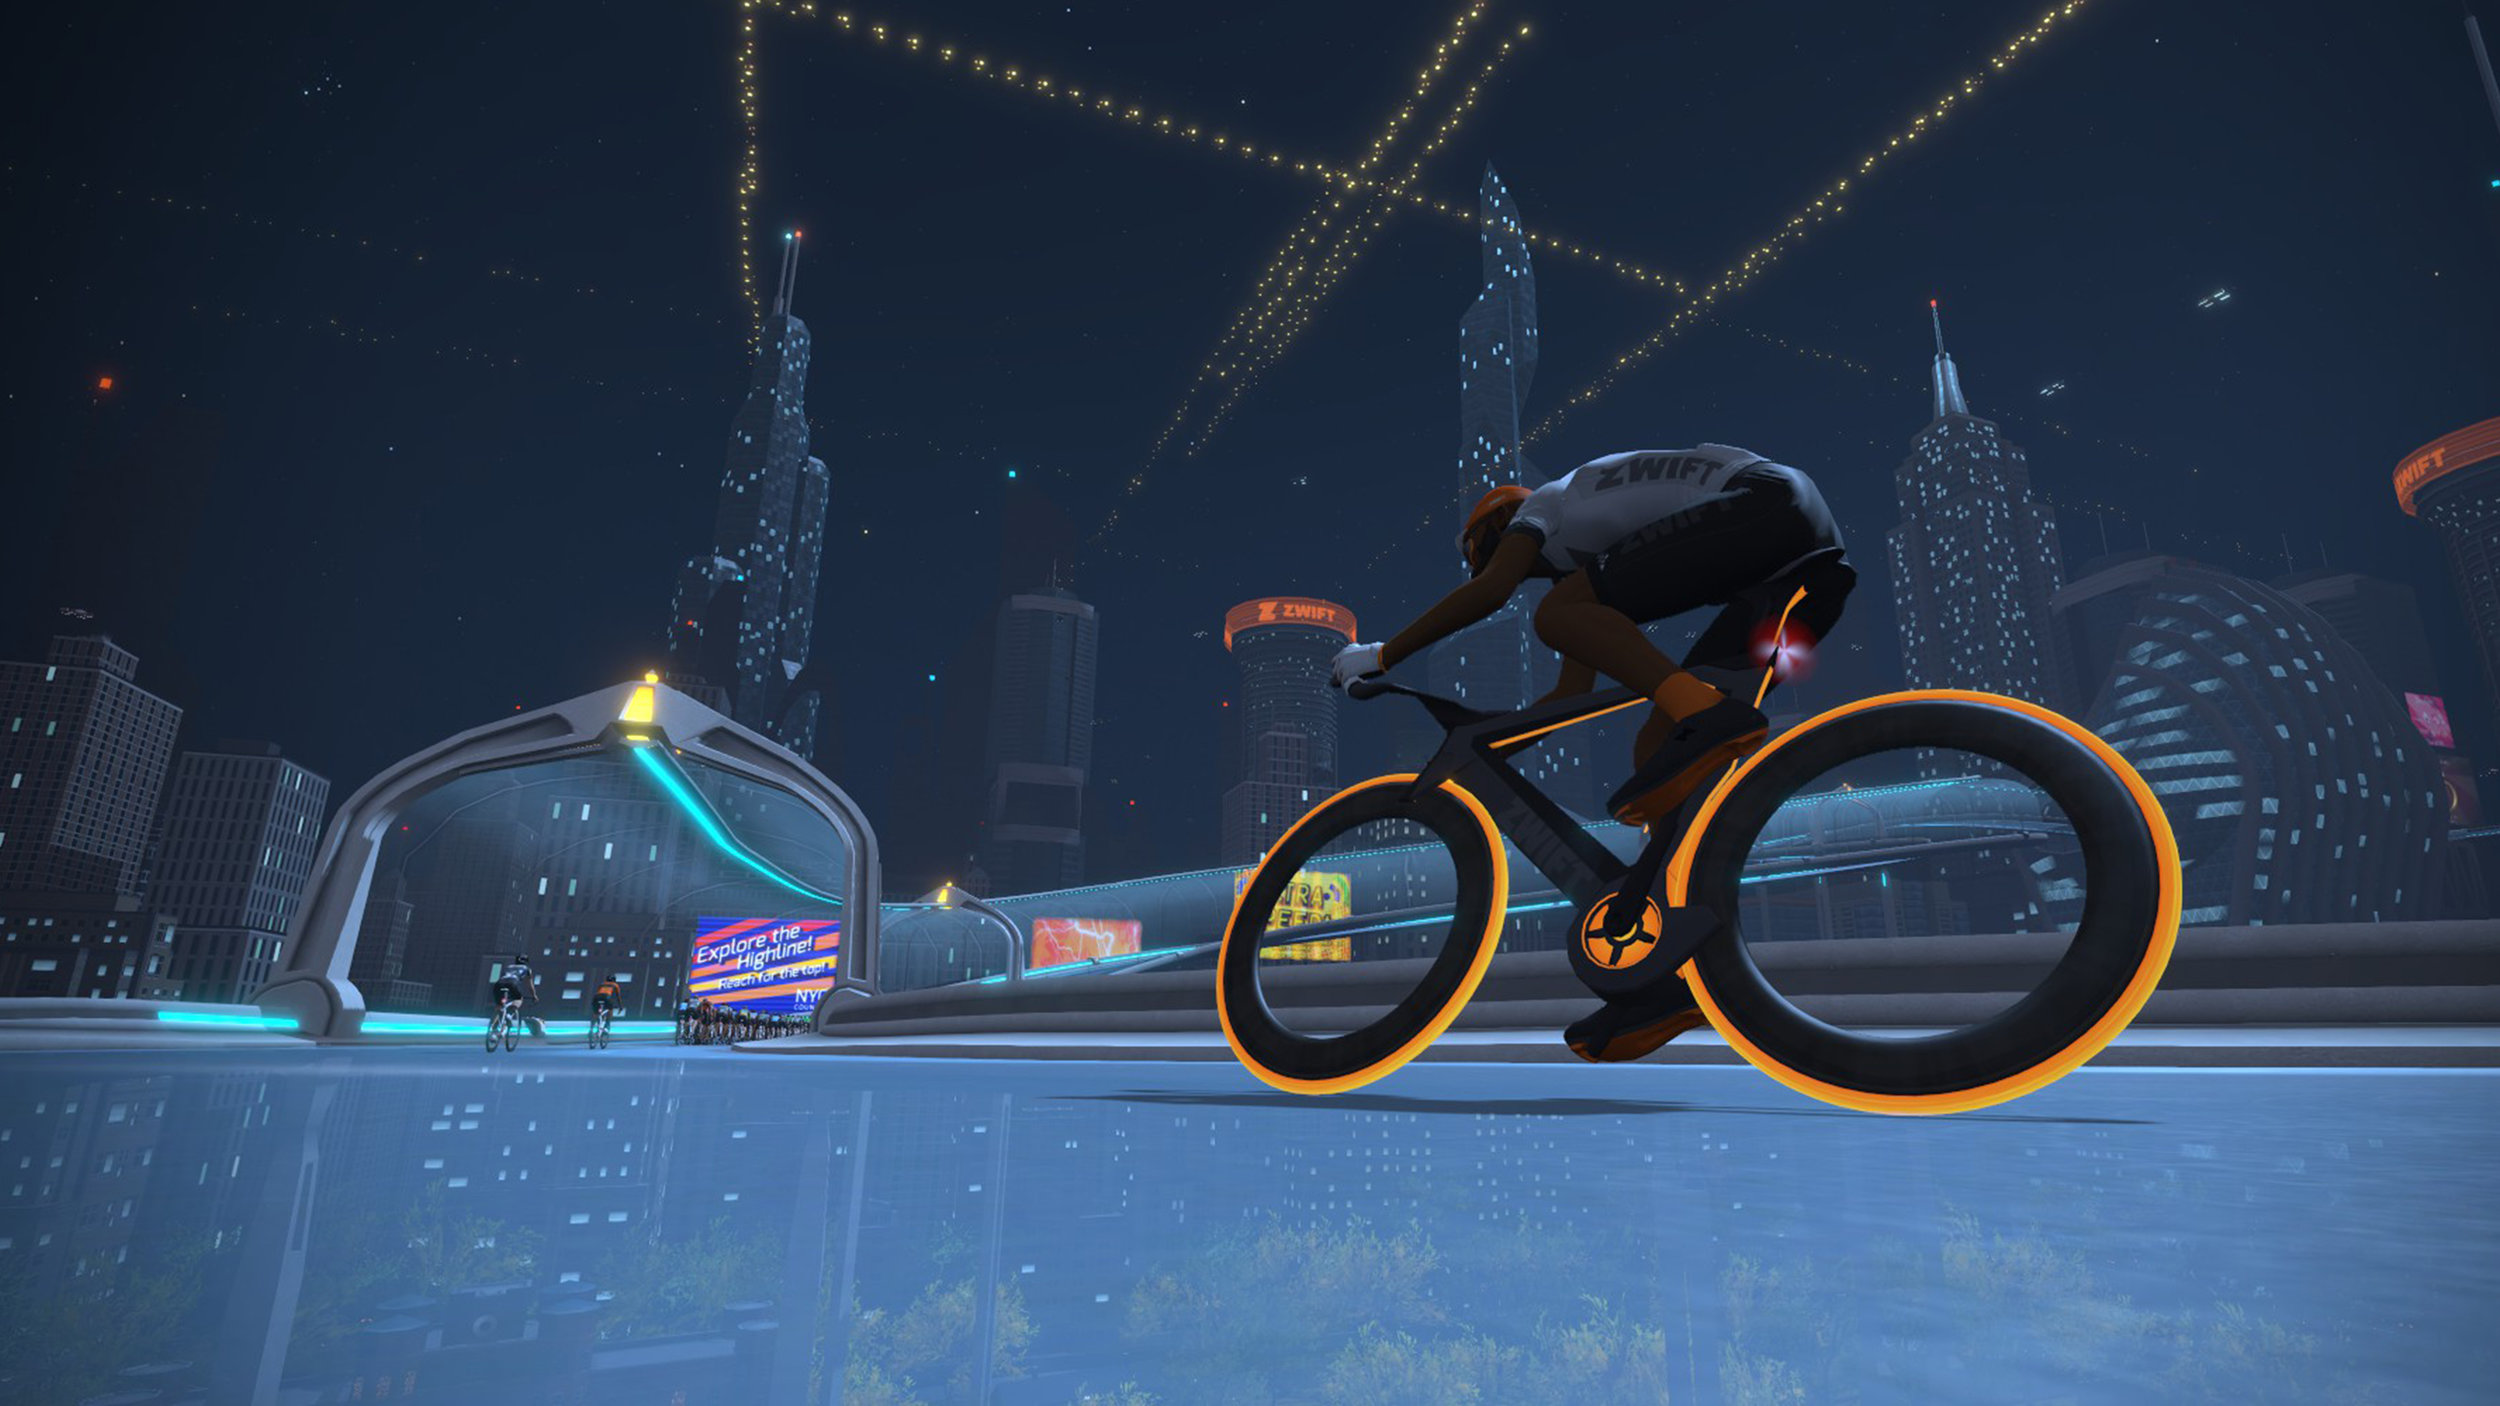 The Zwift NYC KoM climb soars up among the skyscrapers in the virtual world